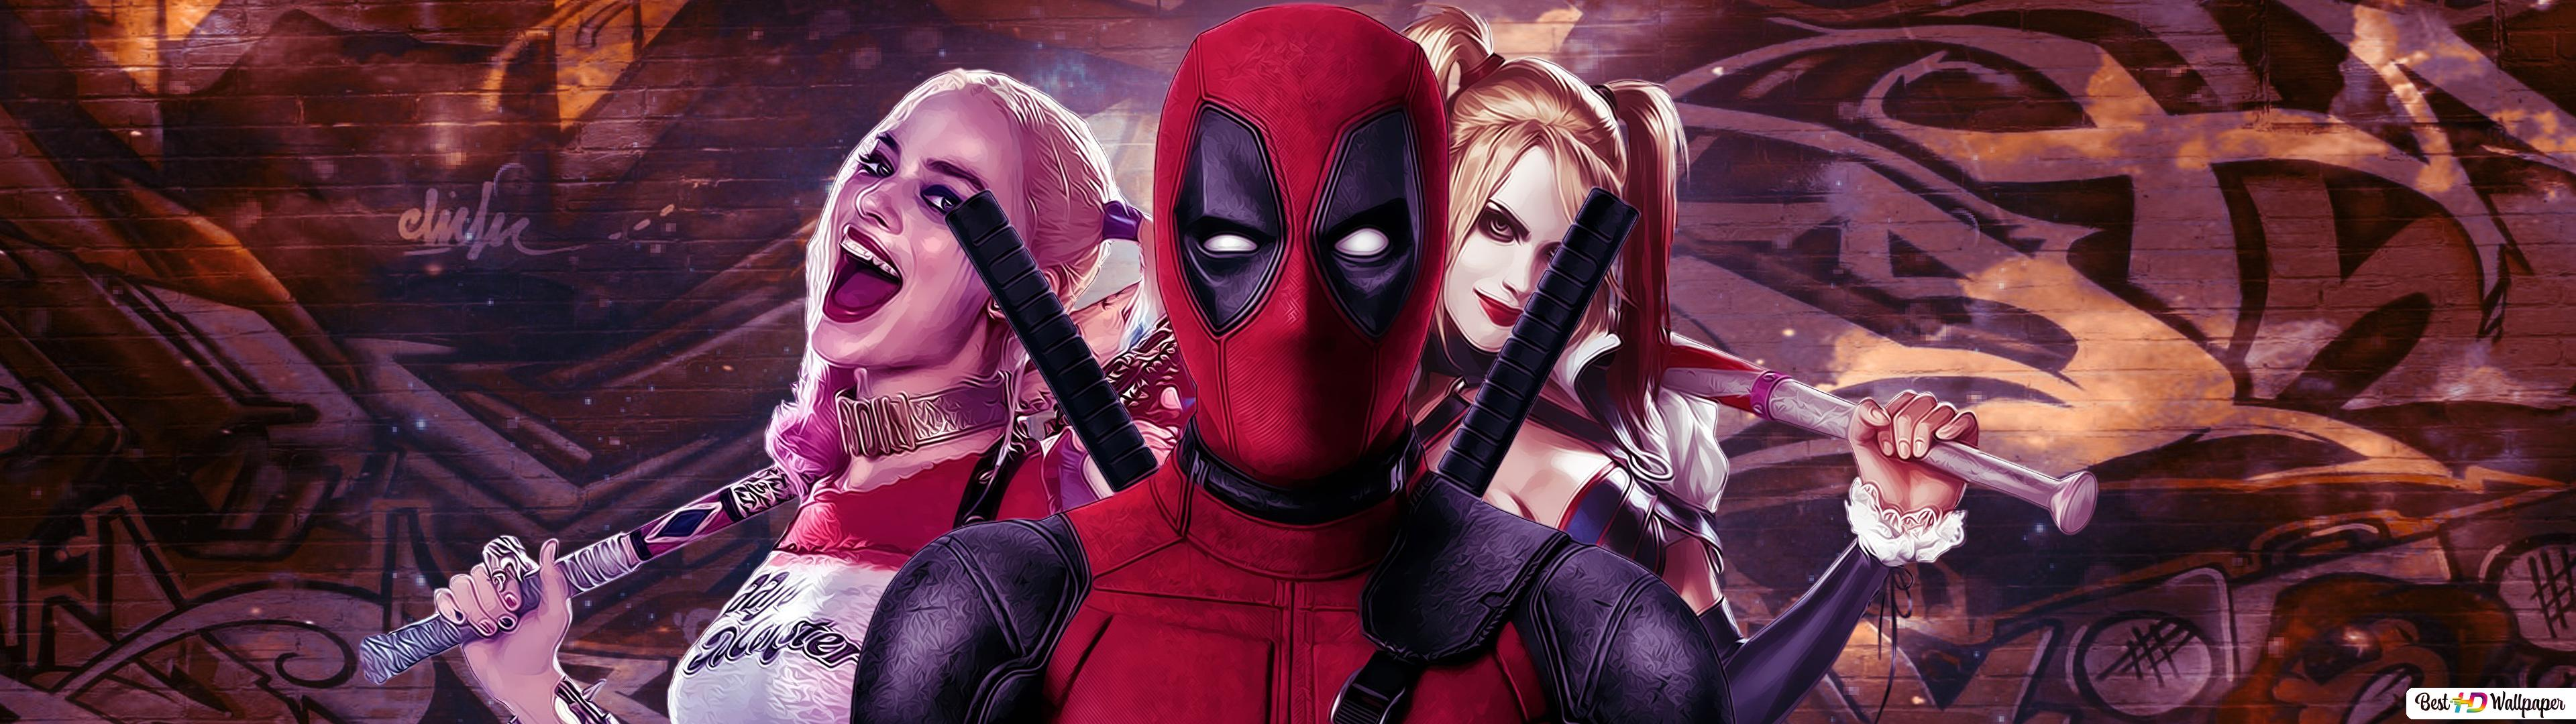 Deadpool And Harley Quinn Crossover Hd Wallpaper Download